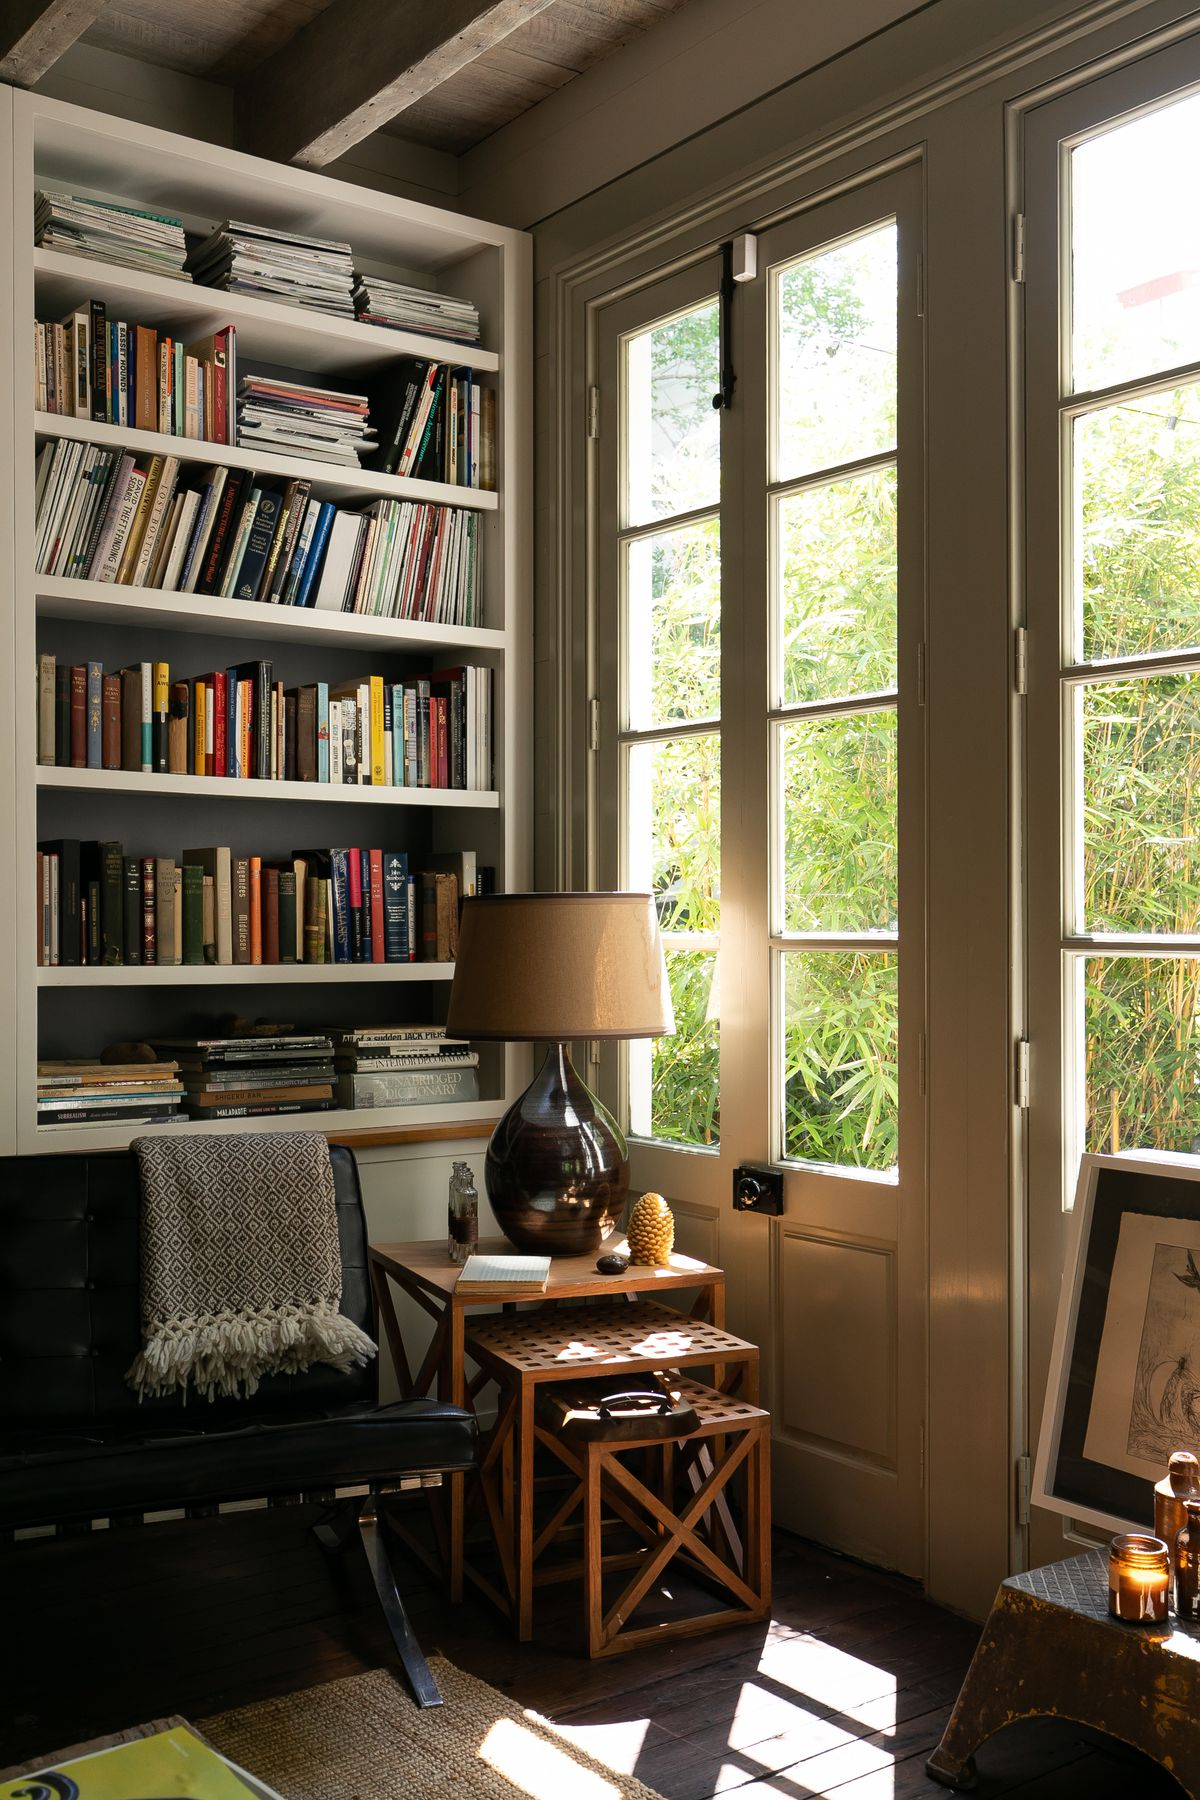 A corner of a living room with a bookcase full of books, a table with a lamp, and a couch. There are glass paned windows on the wall overlooking trees.